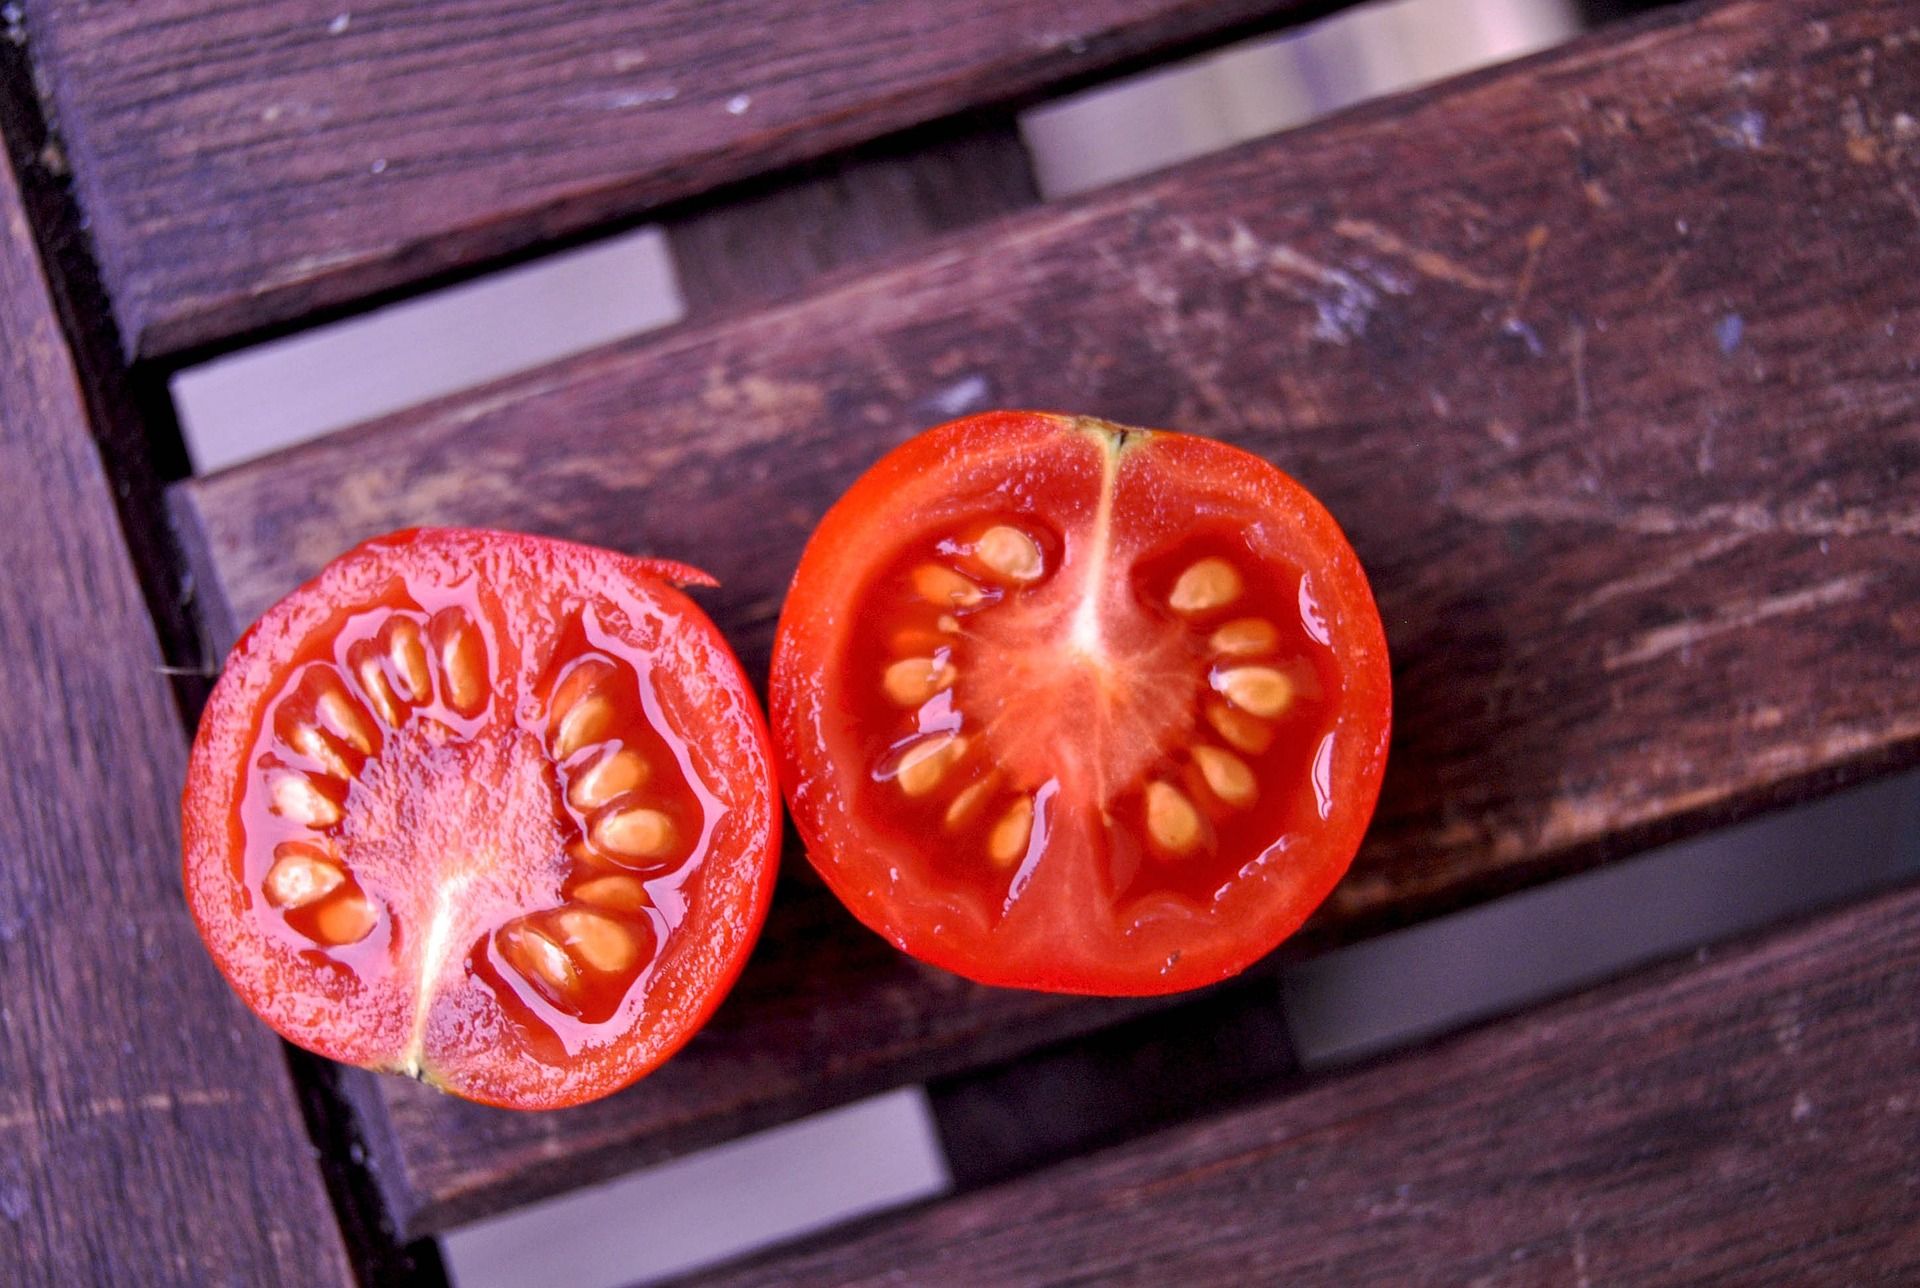 How To Grow Tomatoes From Seed The